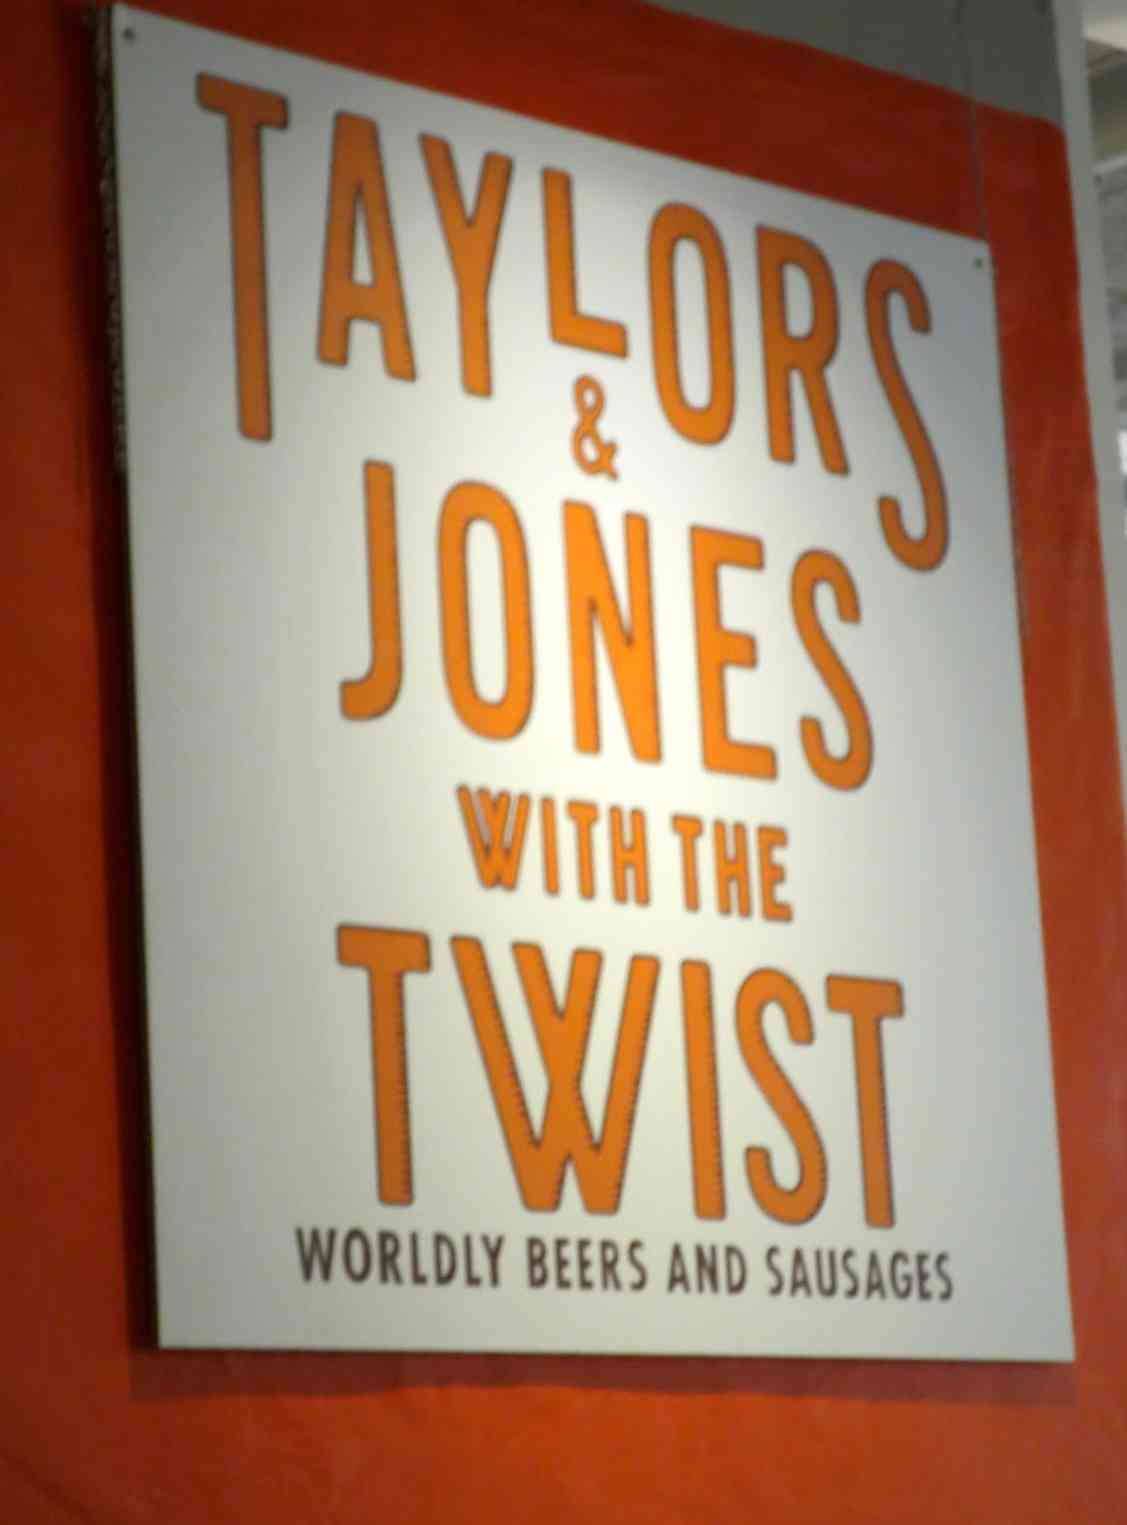 taylors-and-jones-with-the-twist-logo